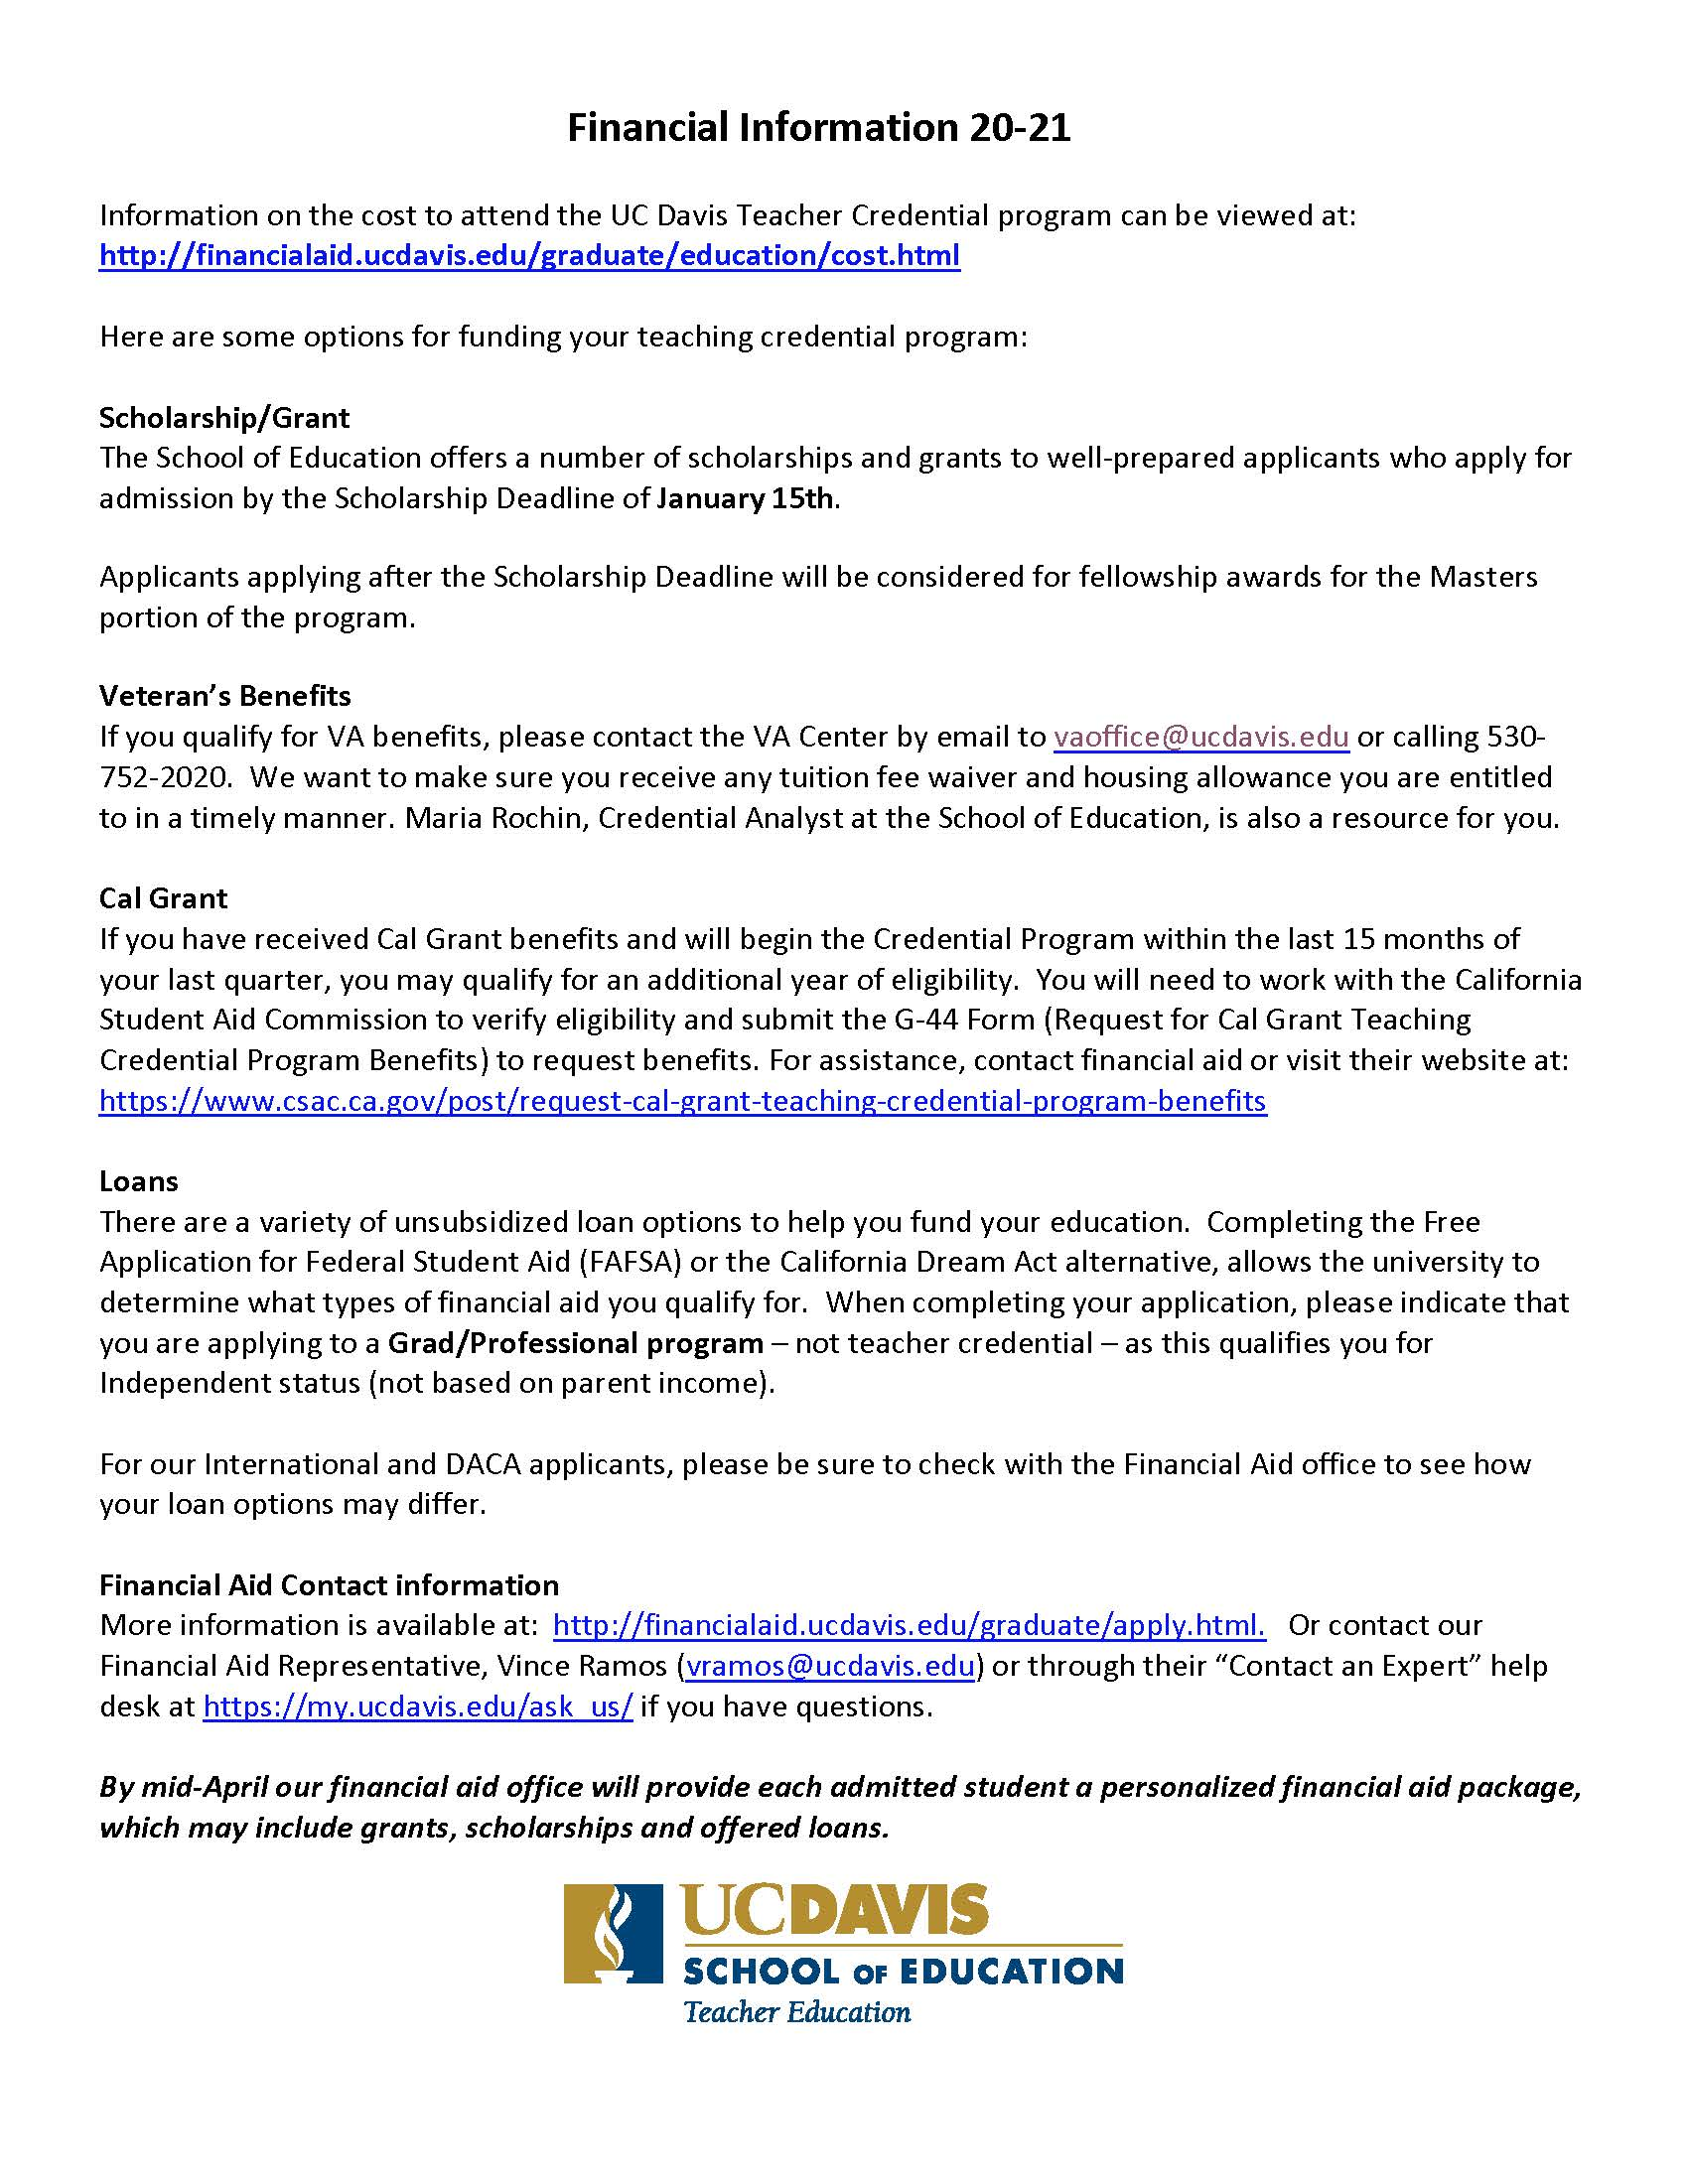 Fees And Financial Aid For Teaching Credential Uc Davis School Of